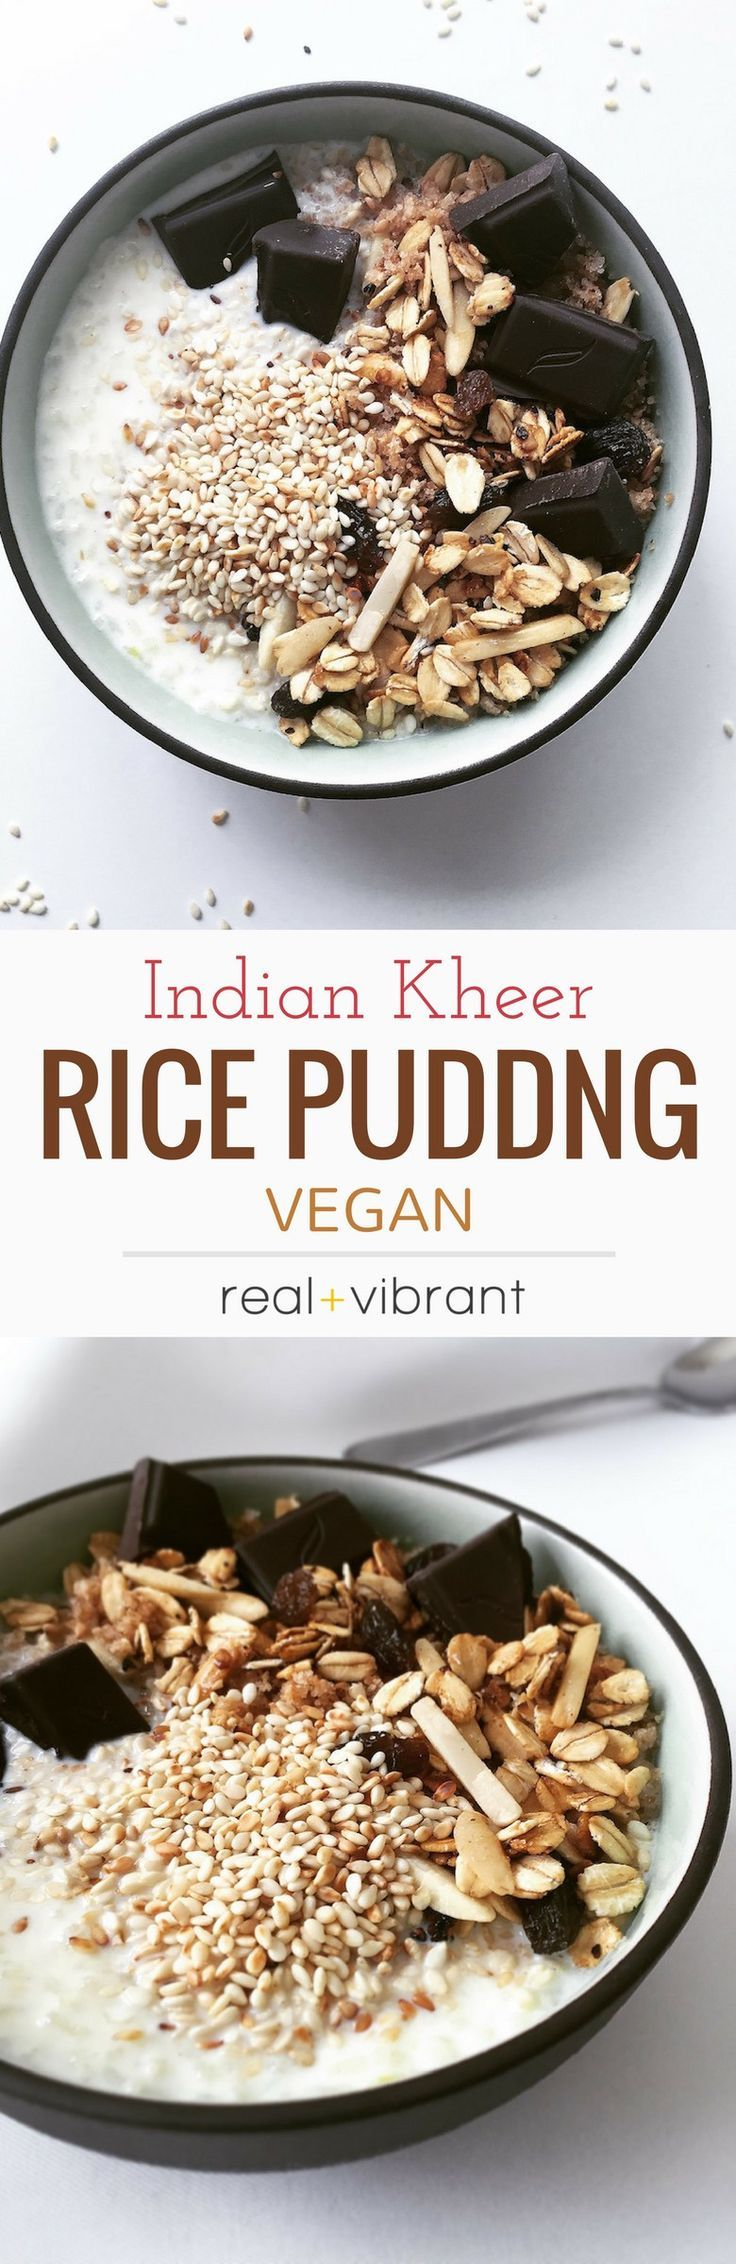 Vegan Indian Kheer Rice Pudding - Pinterest